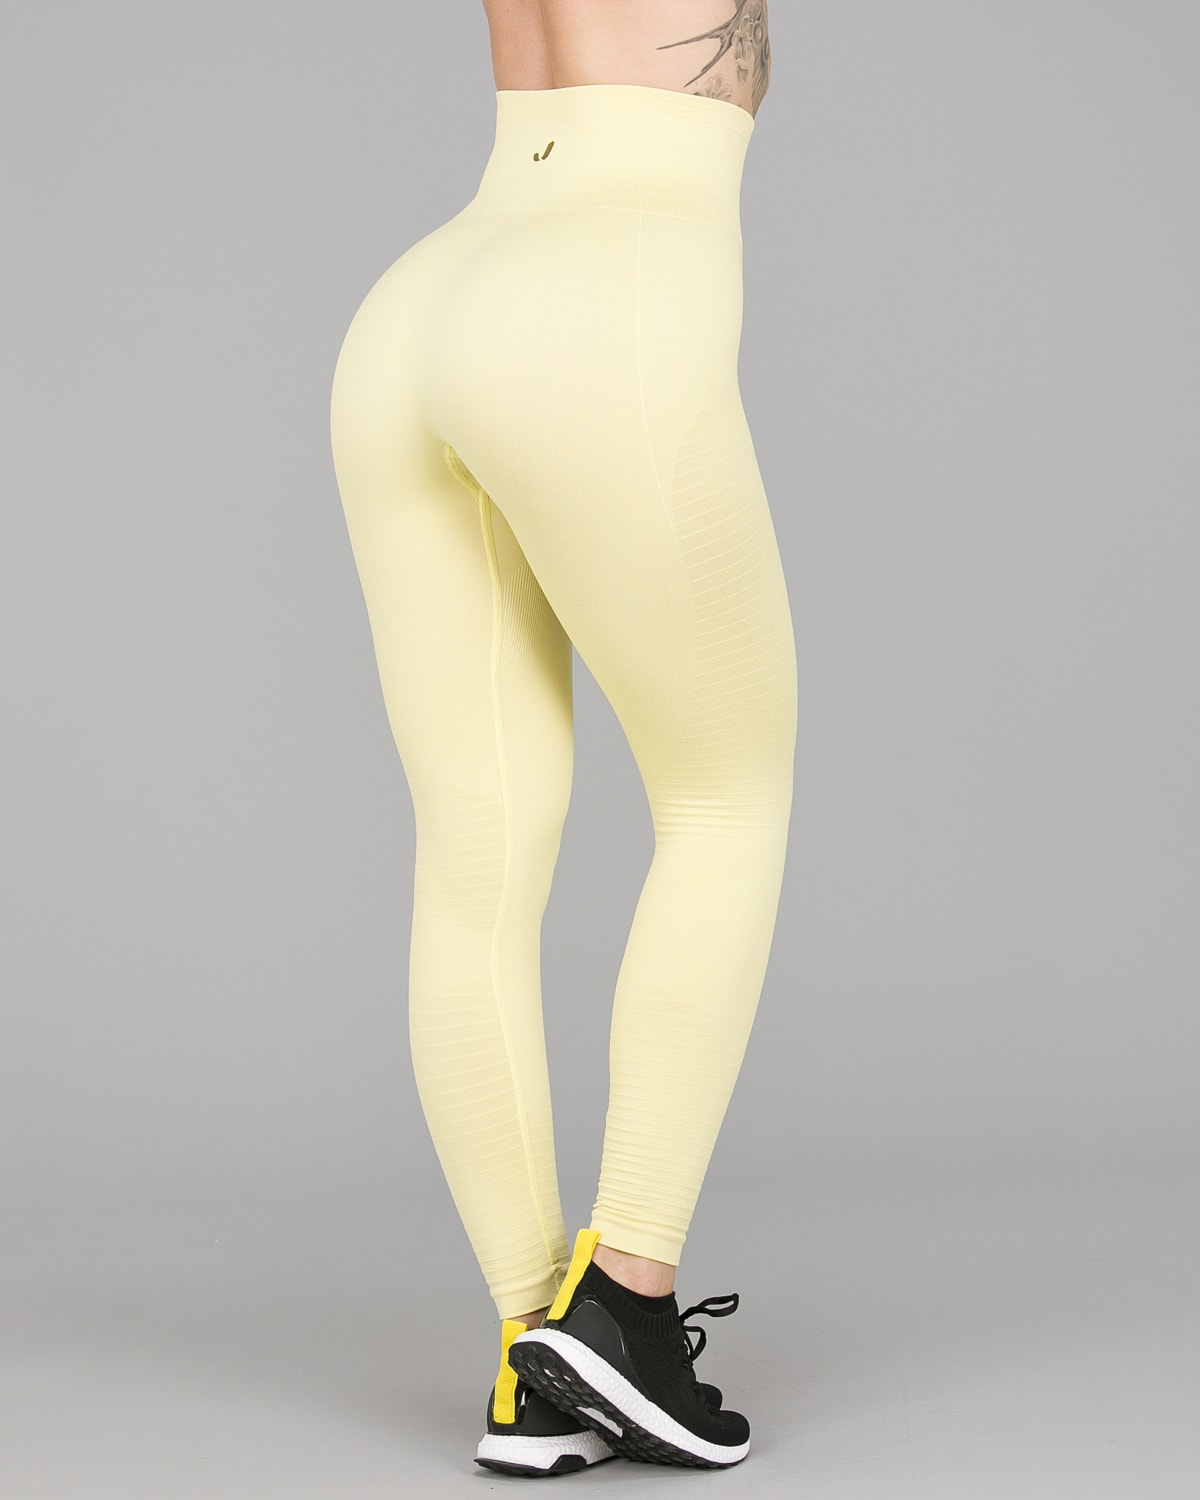 Jerf Gela 2.0 Tights Yellow Pastel13